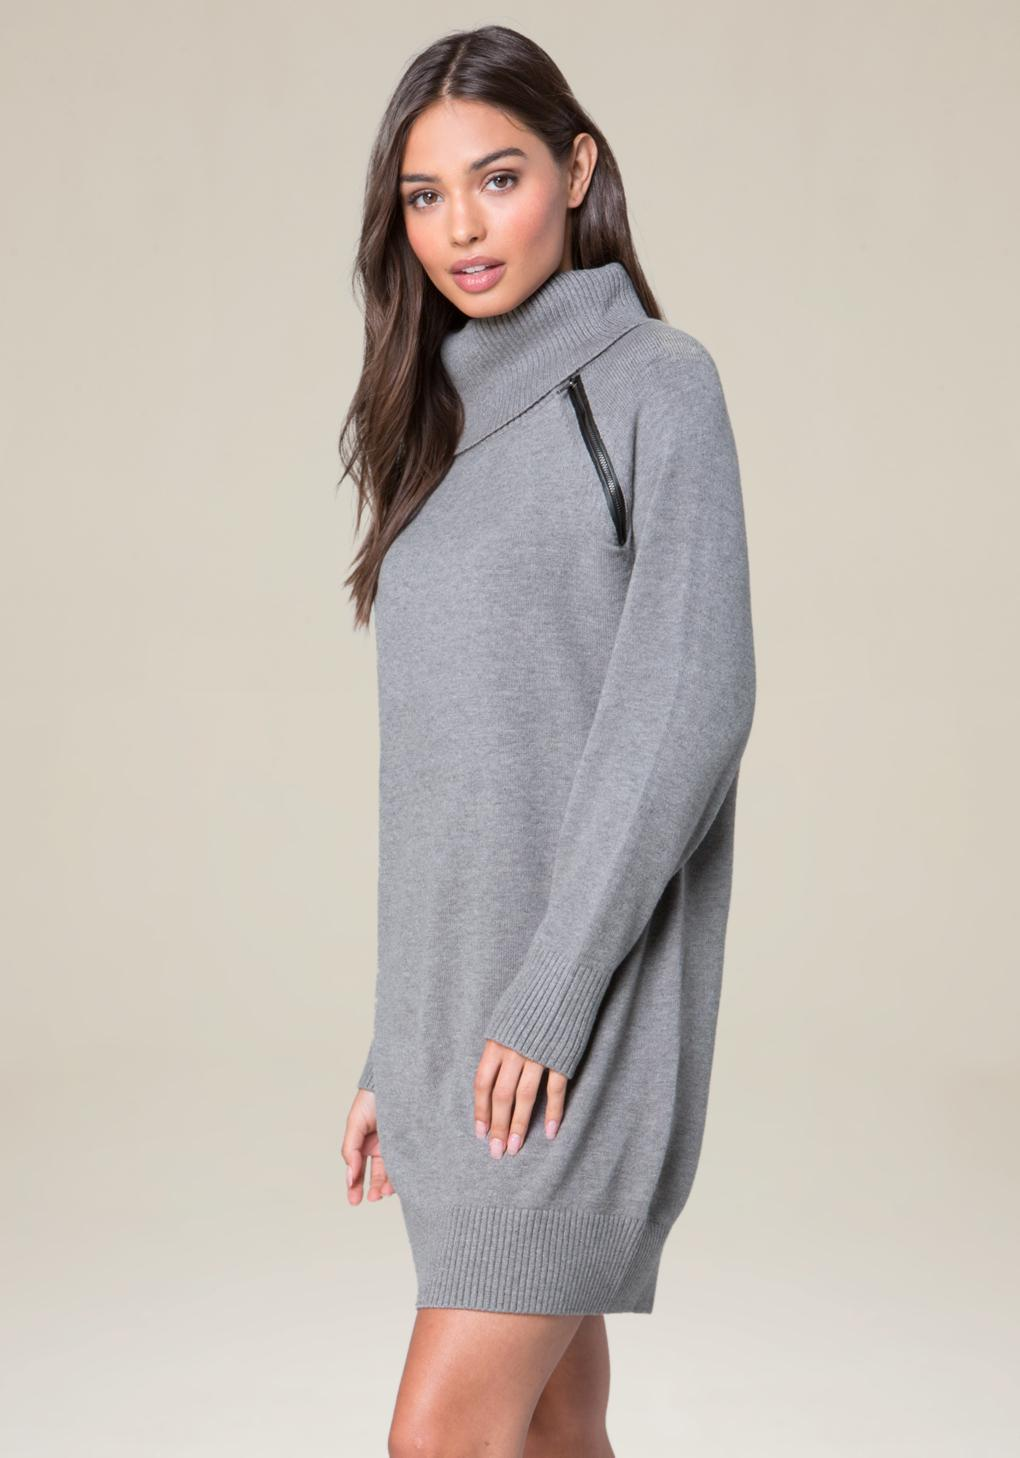 d1a5a21ab47 Bebe Zip Detail Sweater Dress in Gray - Lyst